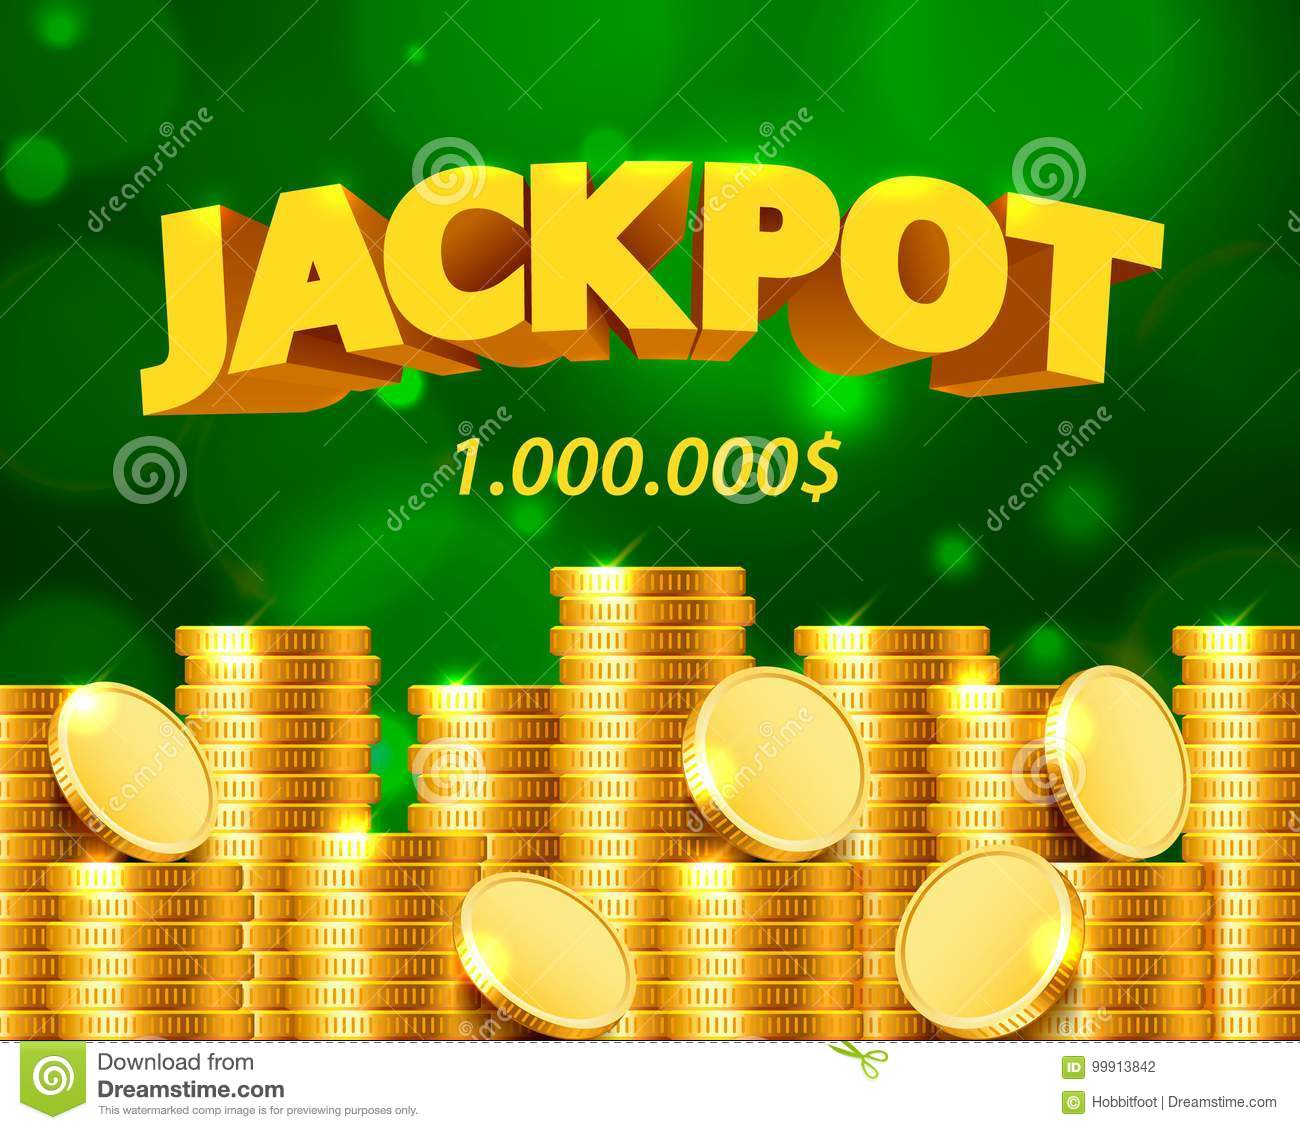 Jackpot million dollars in the form of gold coins.